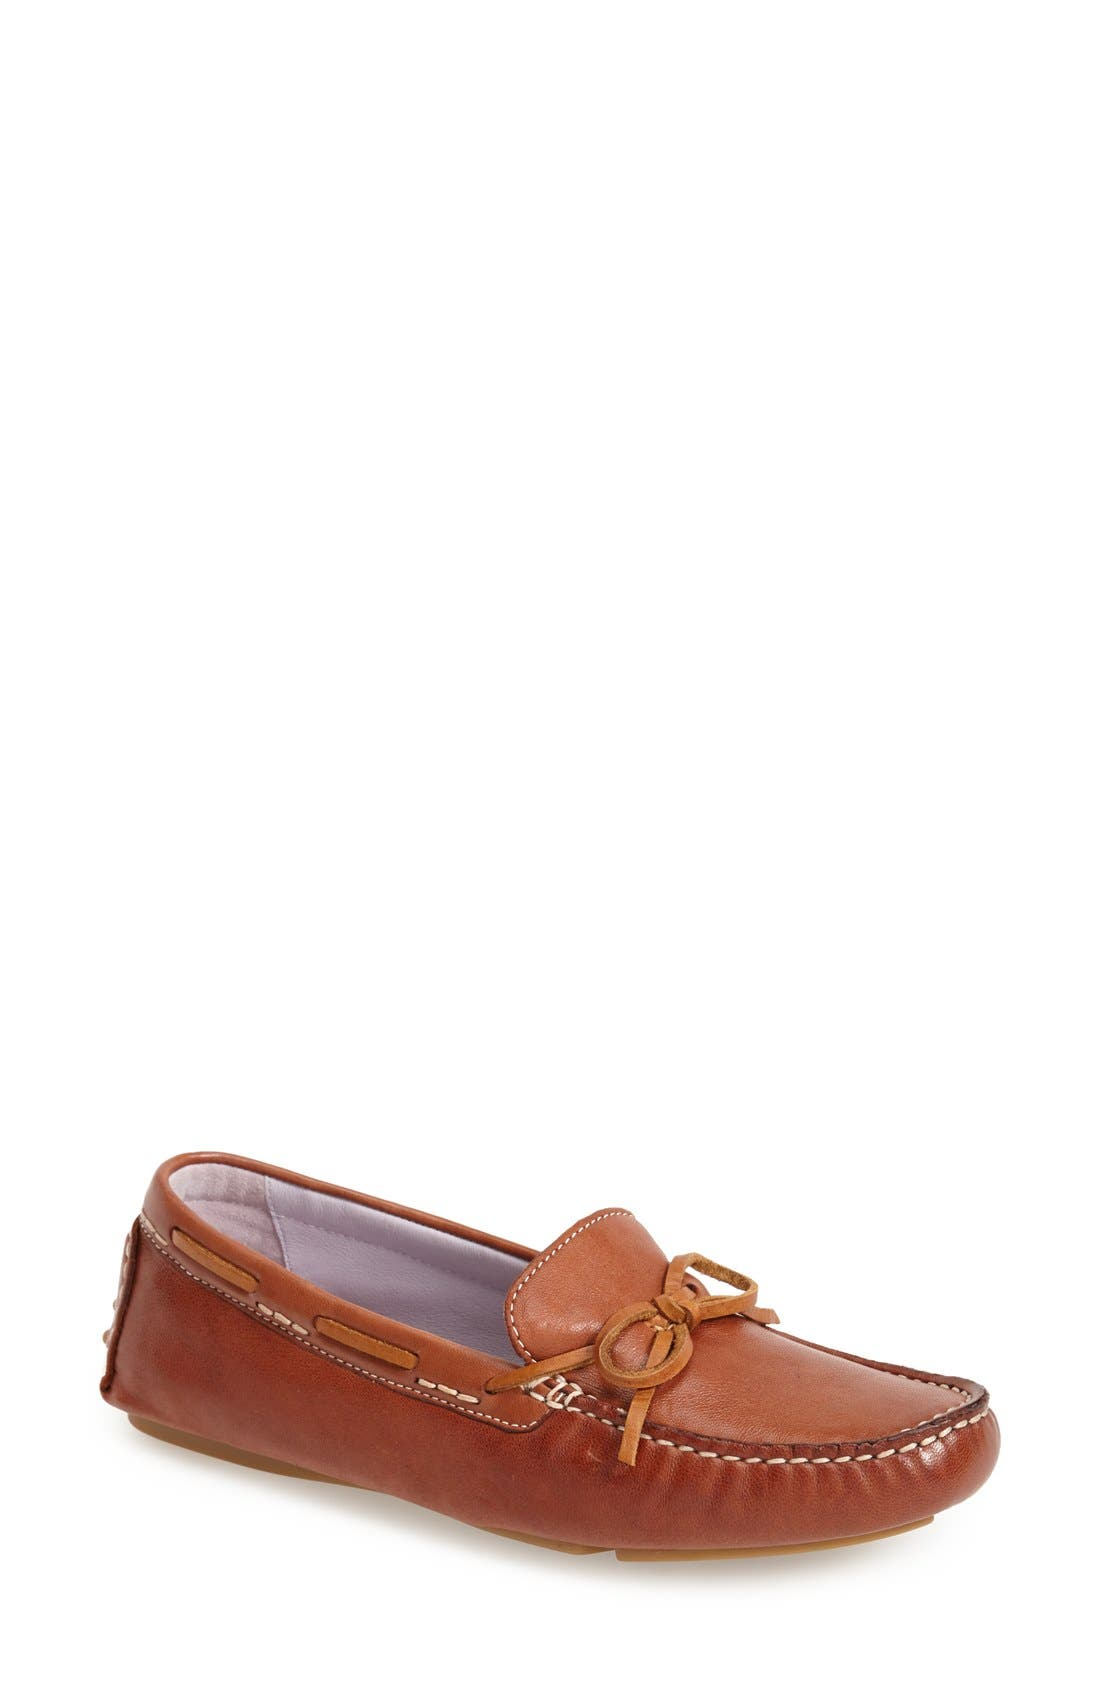 Main Image - Johnston & Murphy 'Maggie' Moccasin